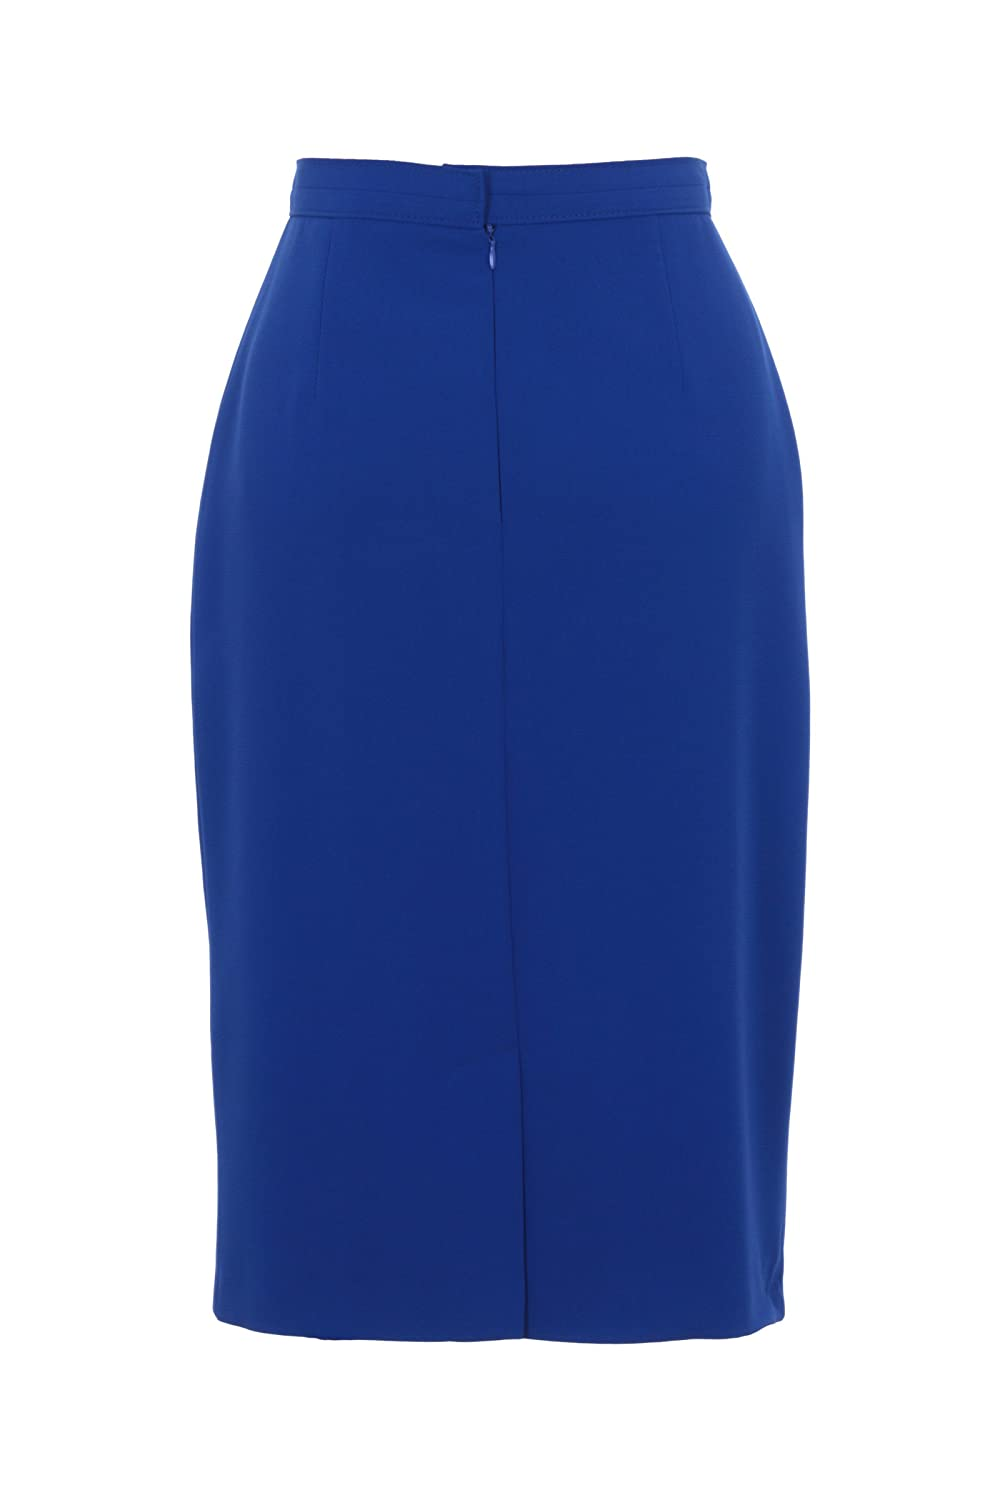 big selection amazing selection exclusive range Busy Clothing Women Pencil Skirt Royal Blue